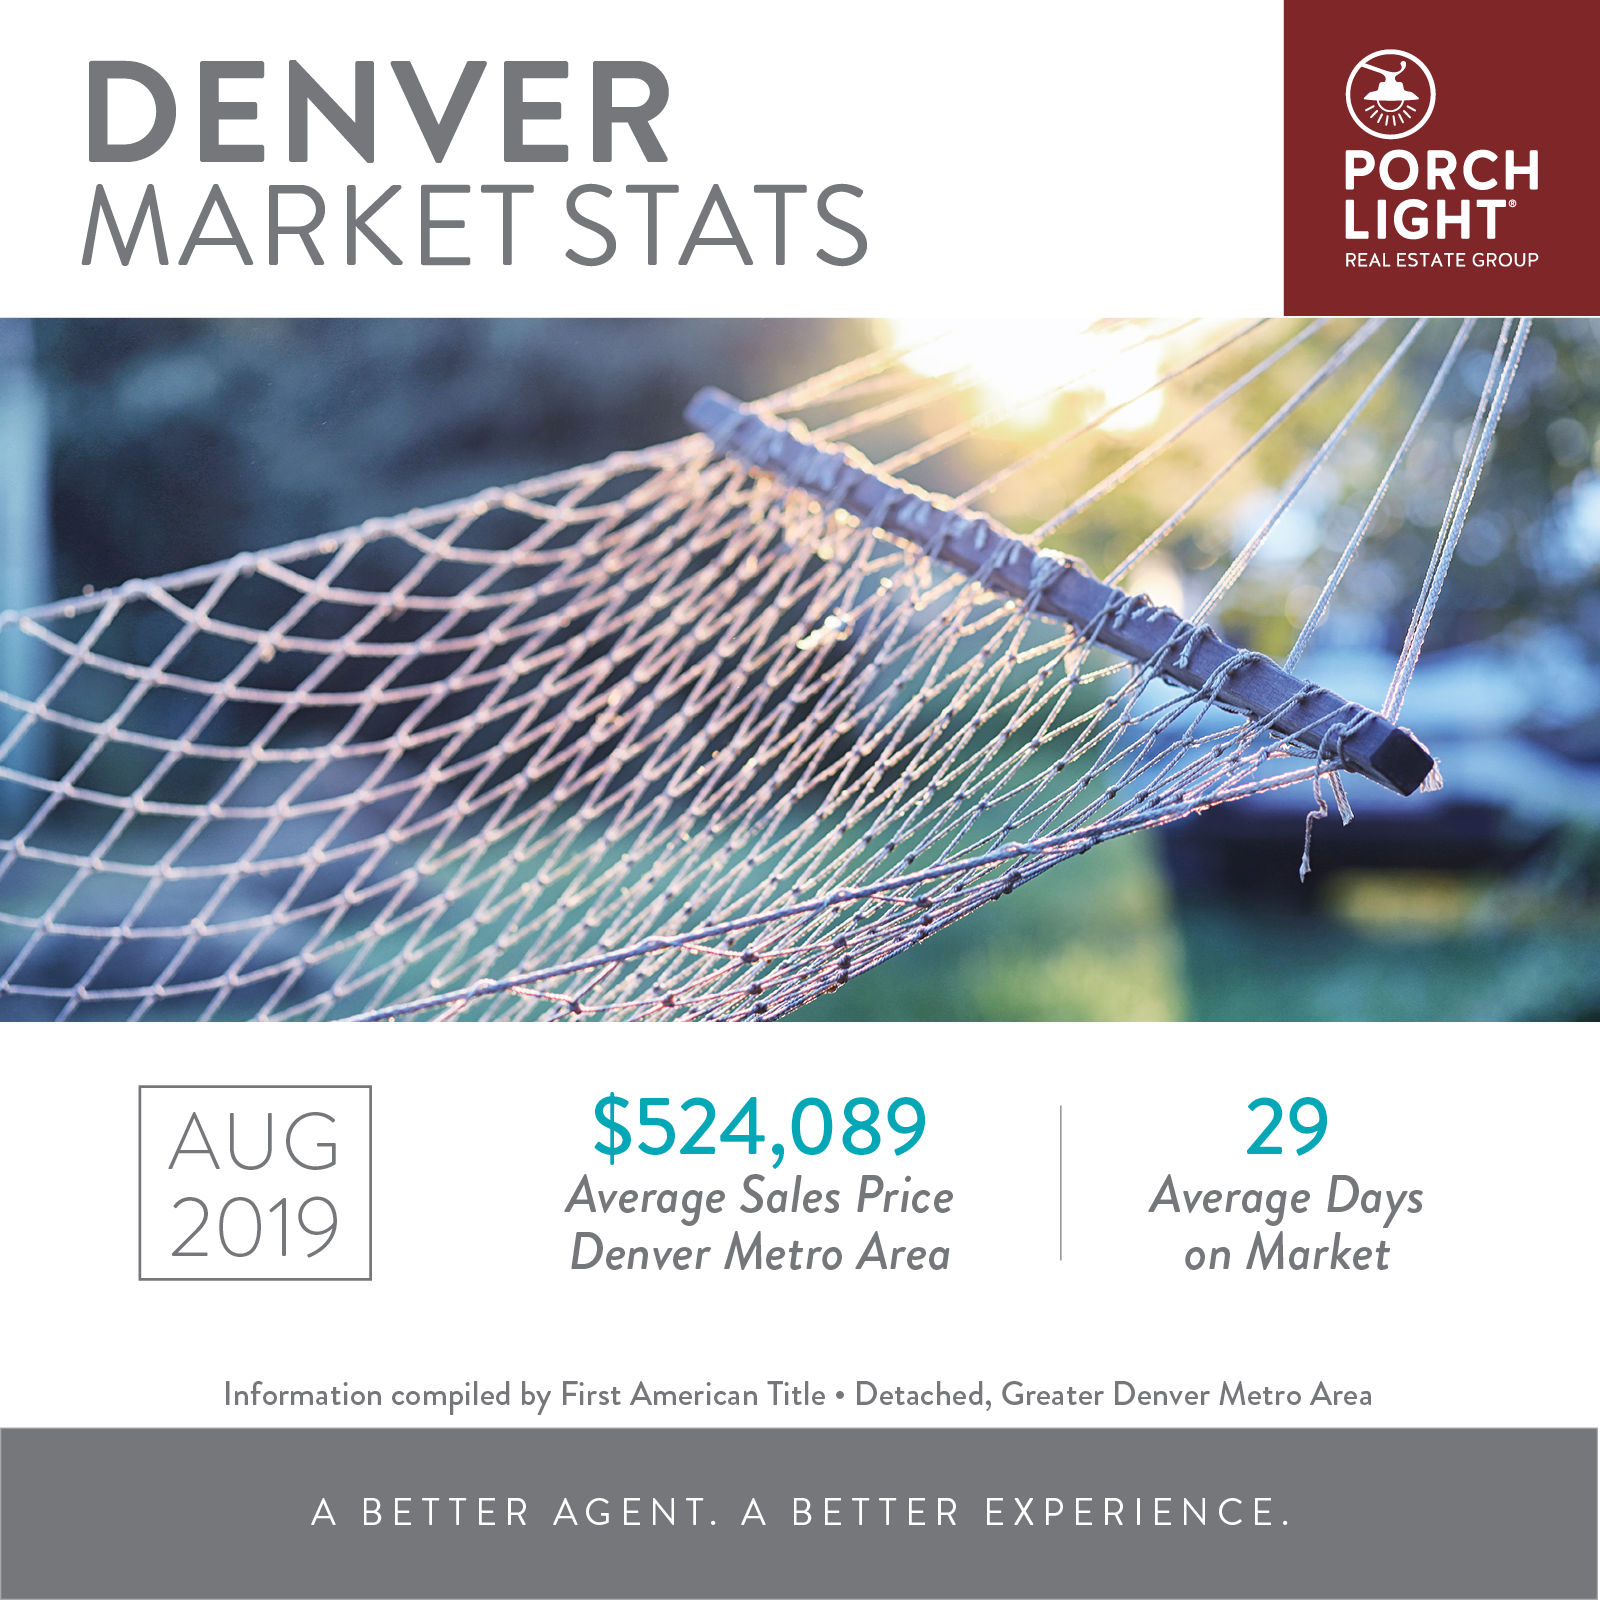 Denver Aug 2019 Market Stats